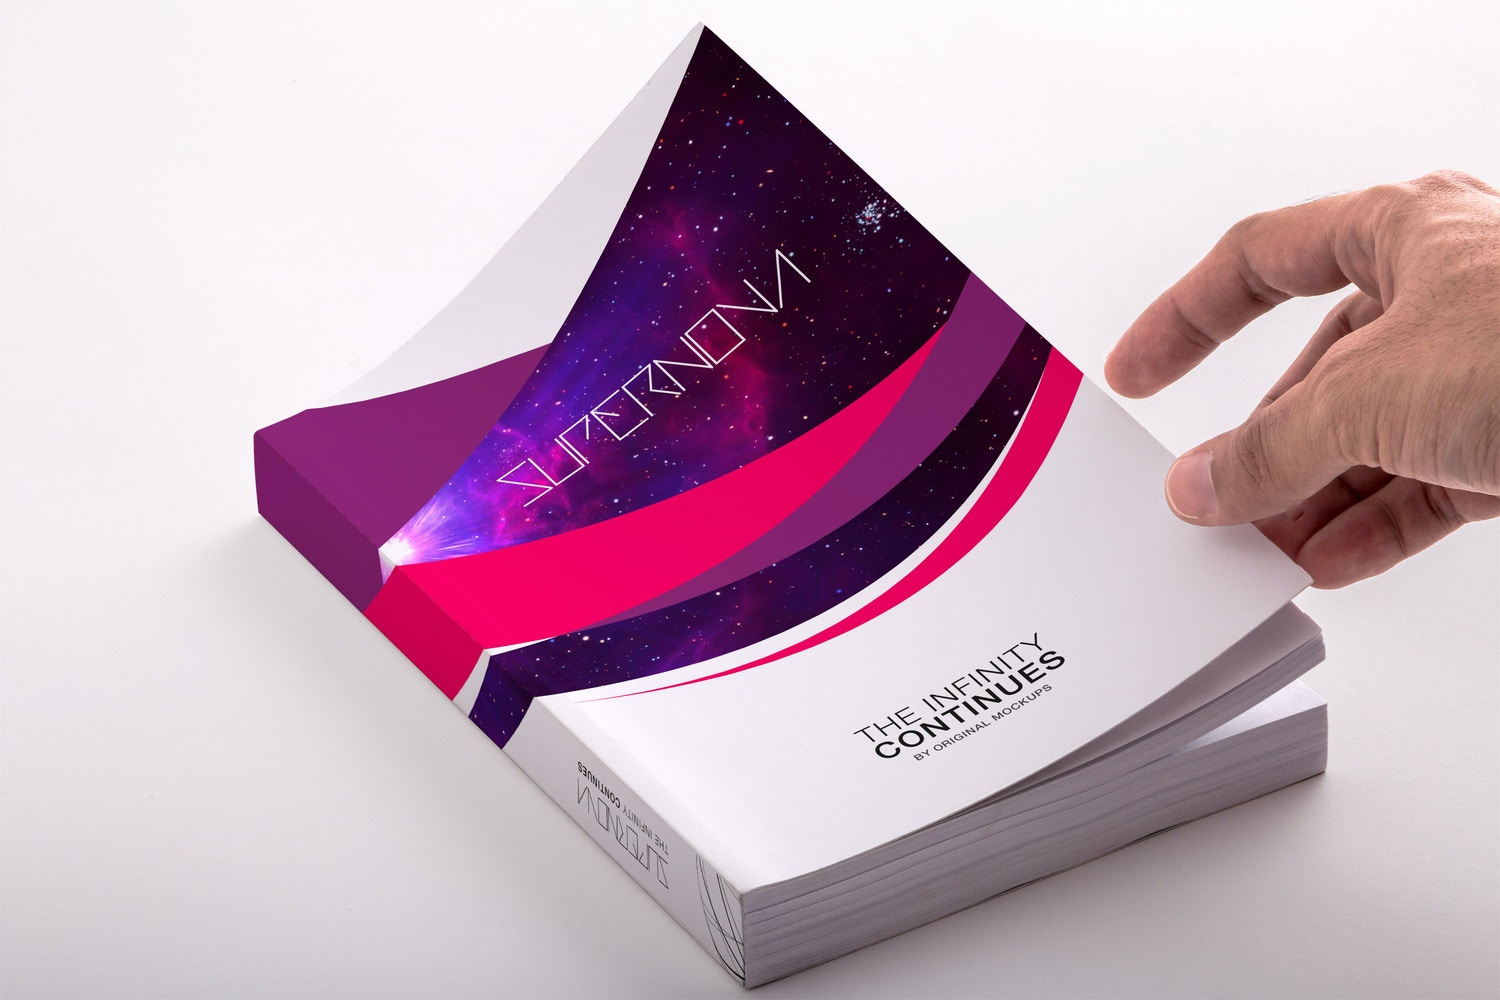 Softcover Trade Book PSD Mockup 01 by Original Mockups on Original Mockups